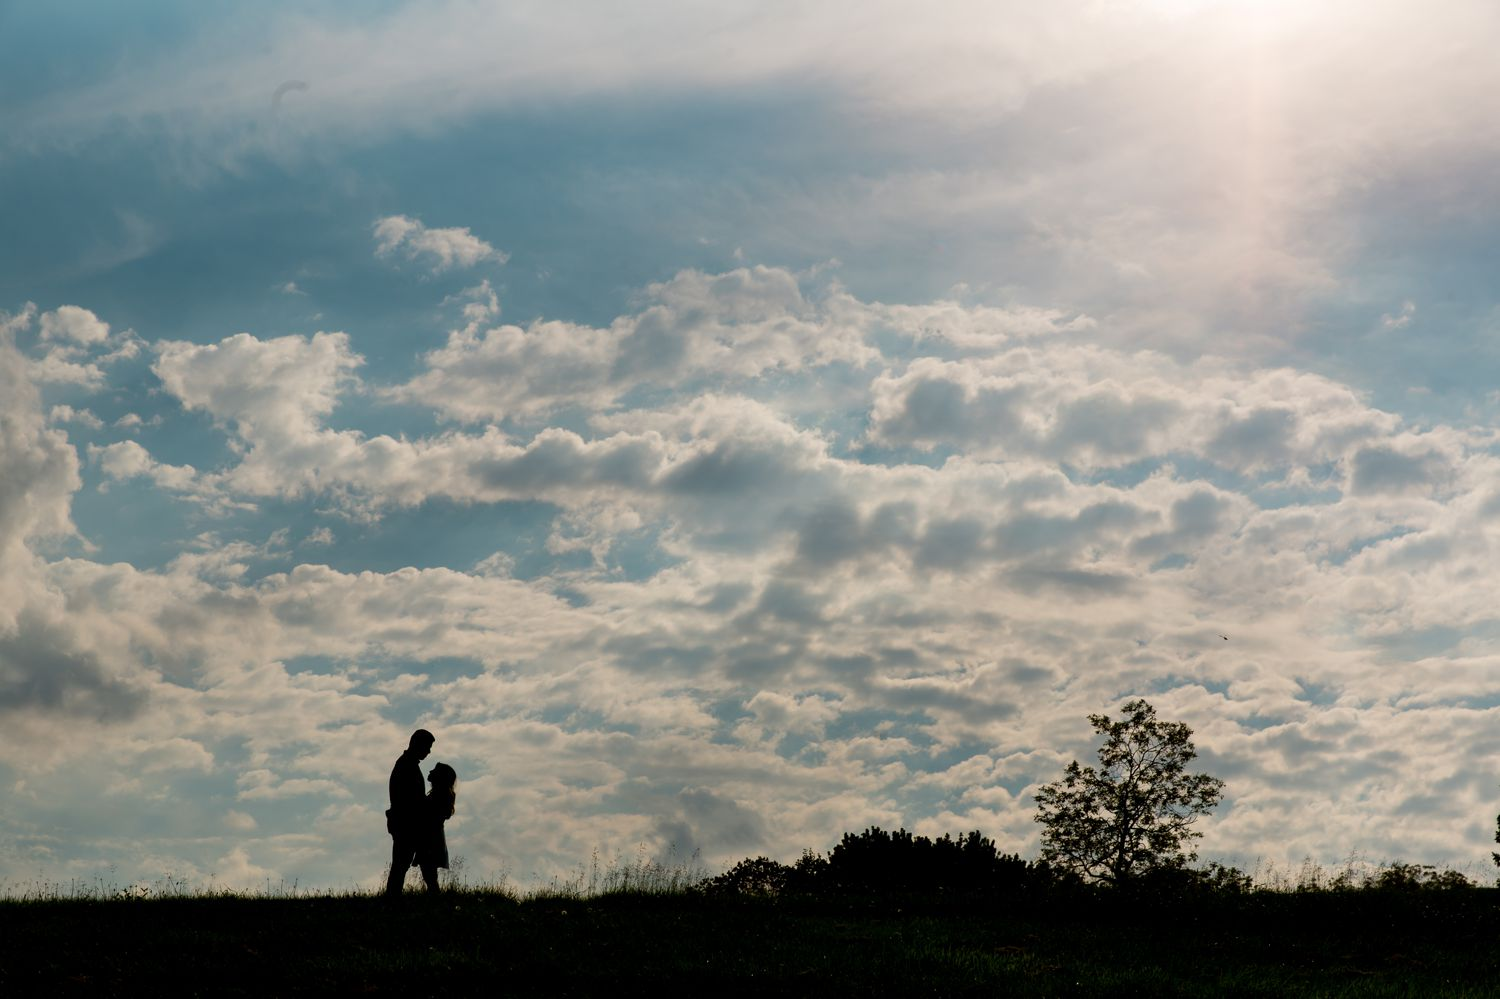 An engagement silhouette portrait taken at the Arboretum in Ottawa, ON